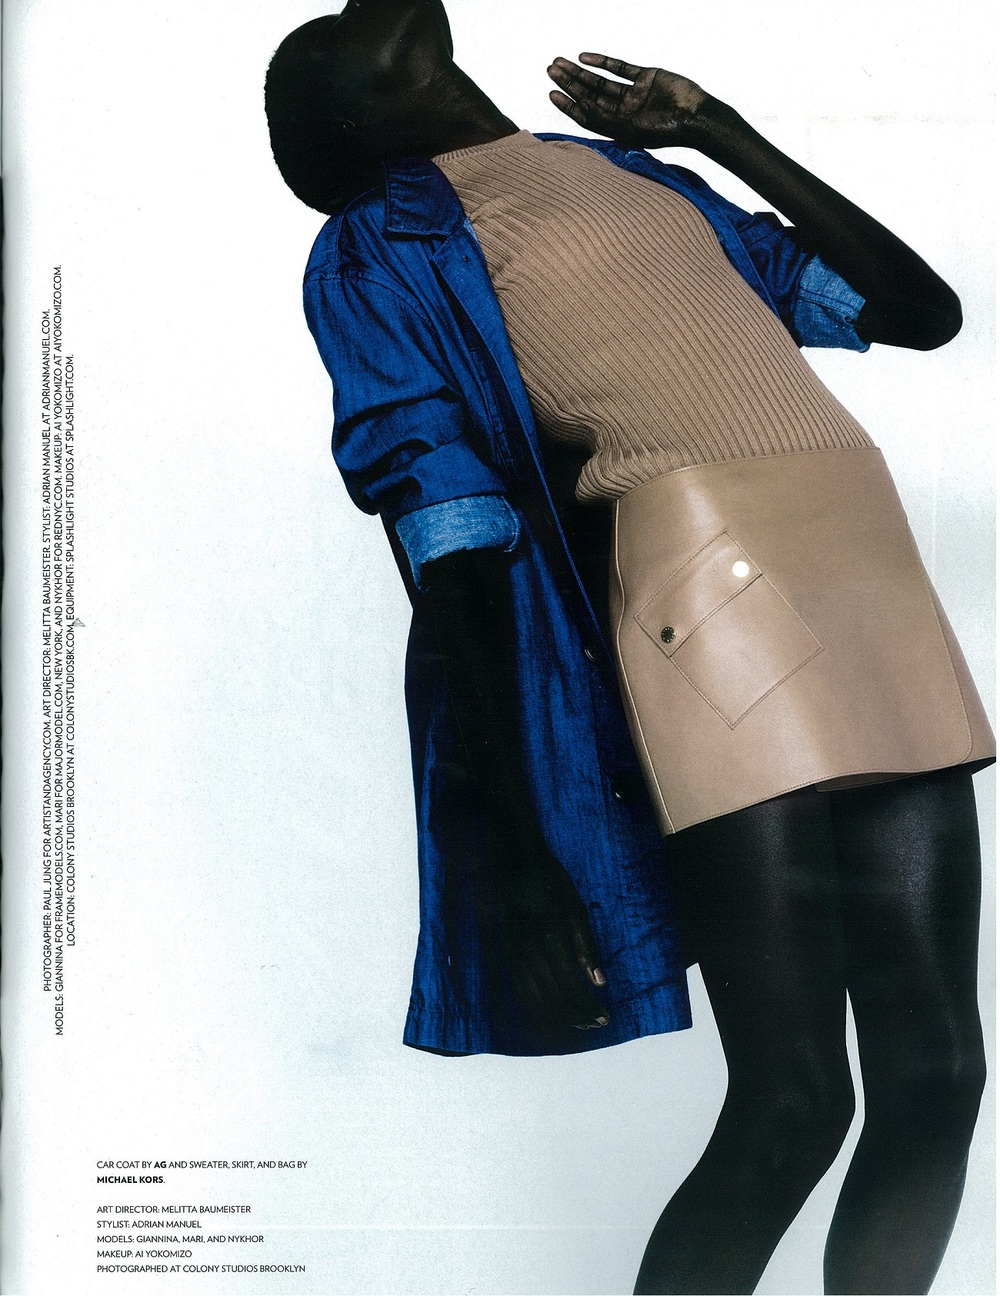 Flaunt Magazine- Issue 131- Car Coat in Aurora Sky